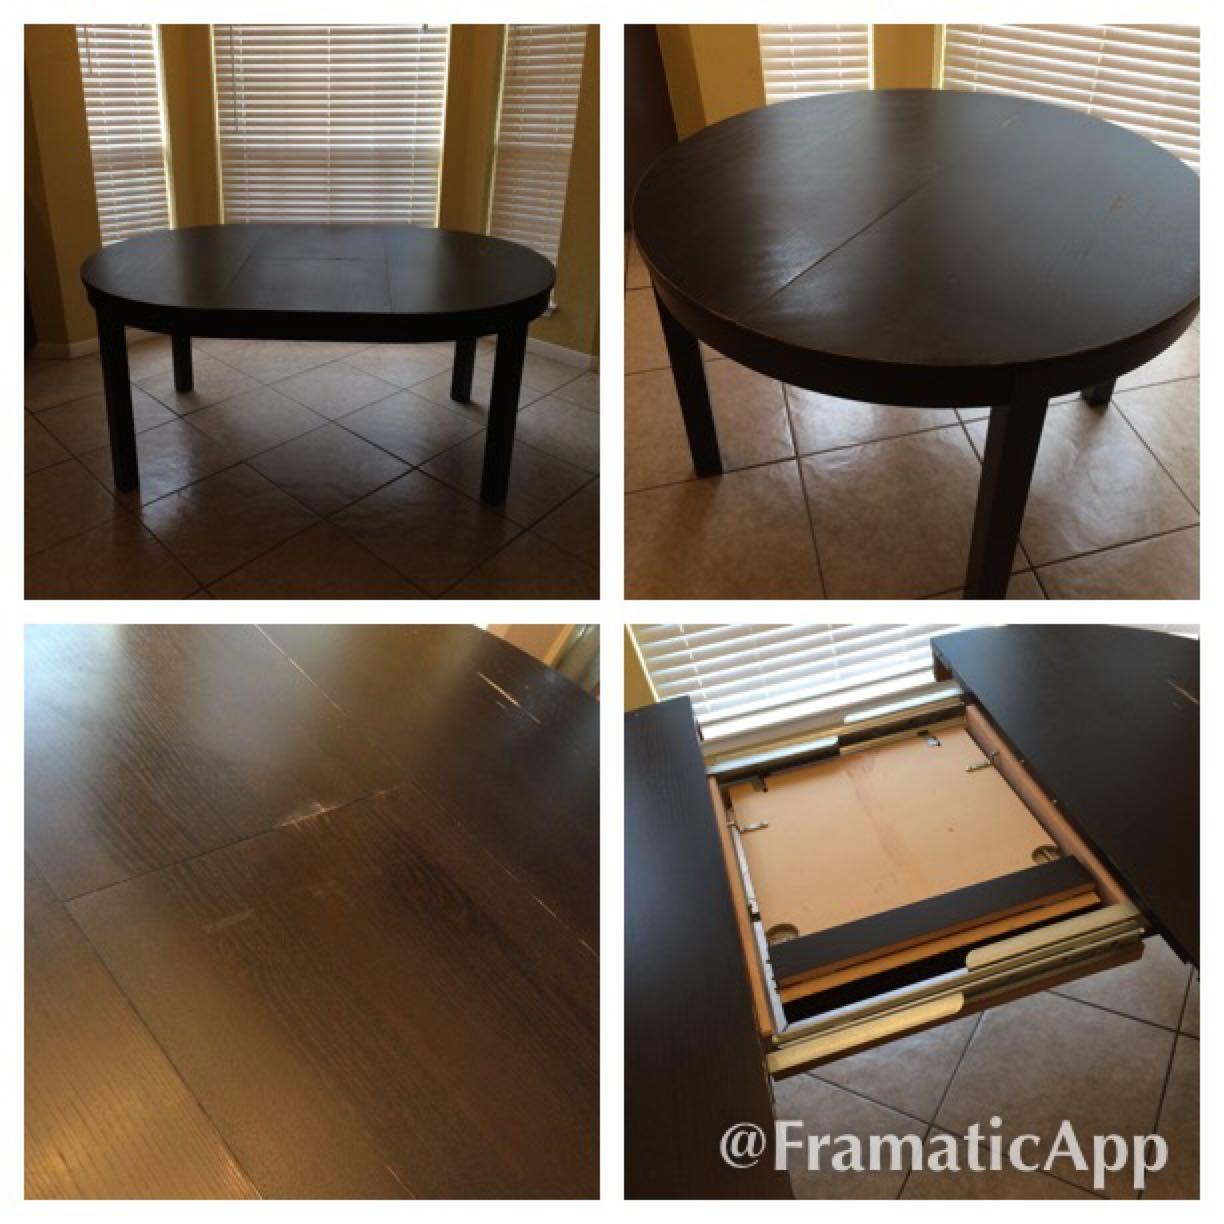 Find More Ikea Bjursta Extendable Round Dining Table For Sale At Up To 90 Off